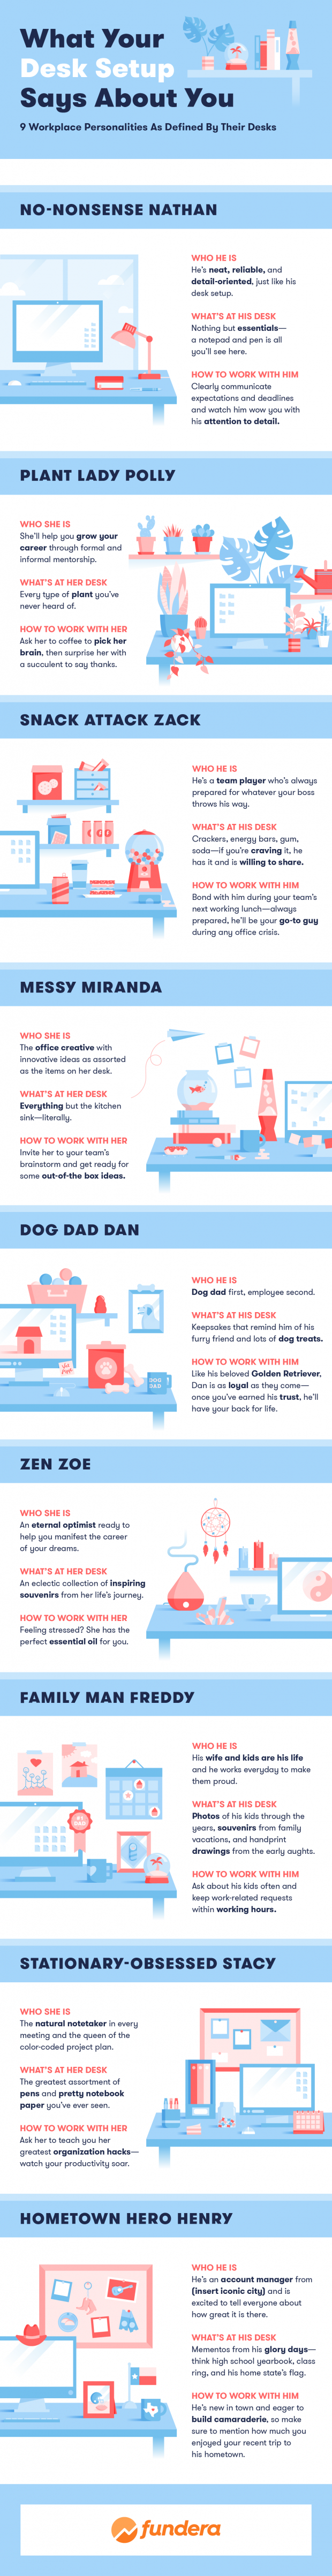 what your desk setup says about you infographic